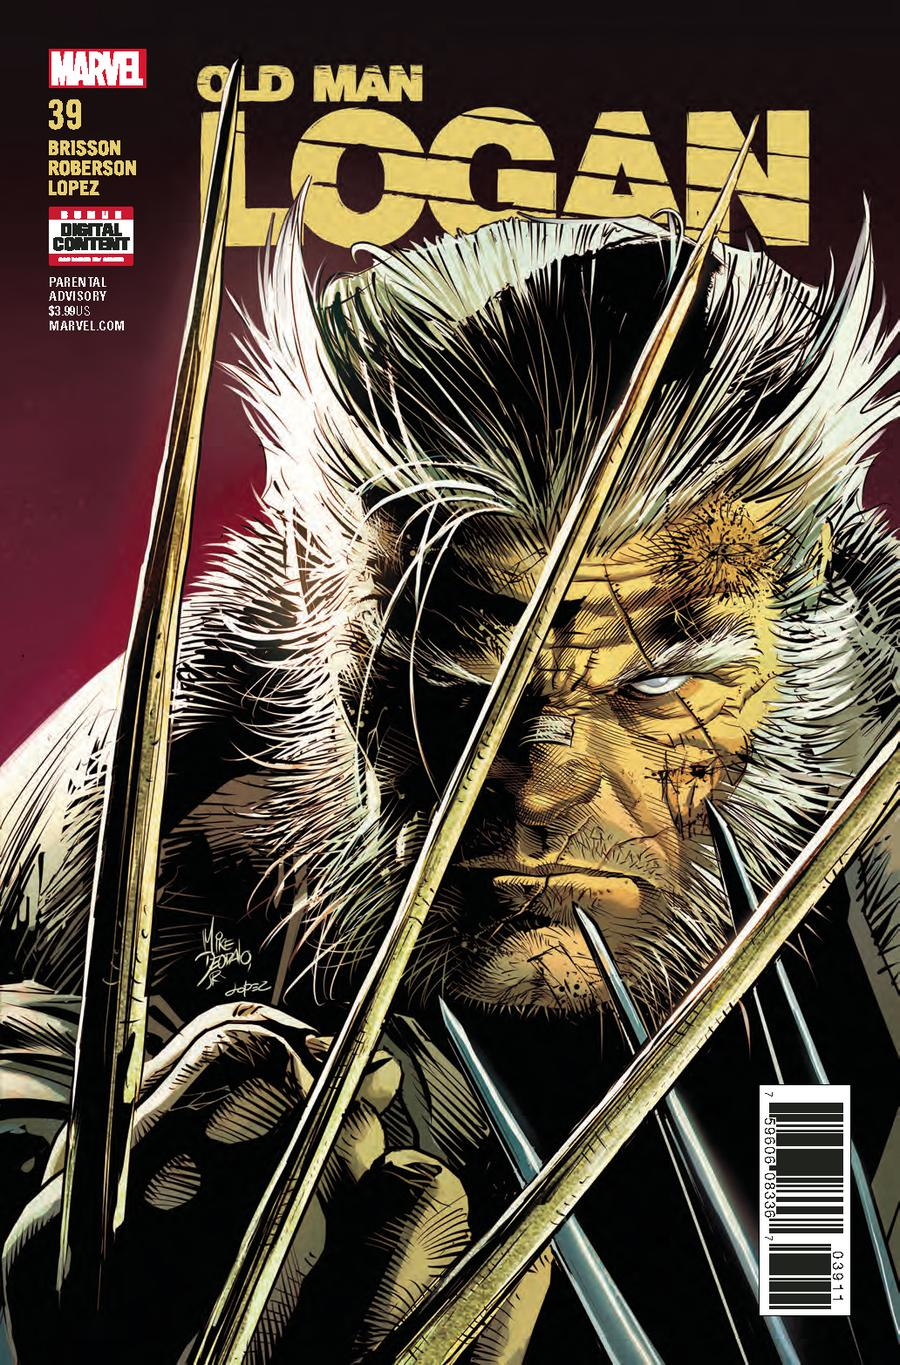 Old Man Logan Vol 2 #39